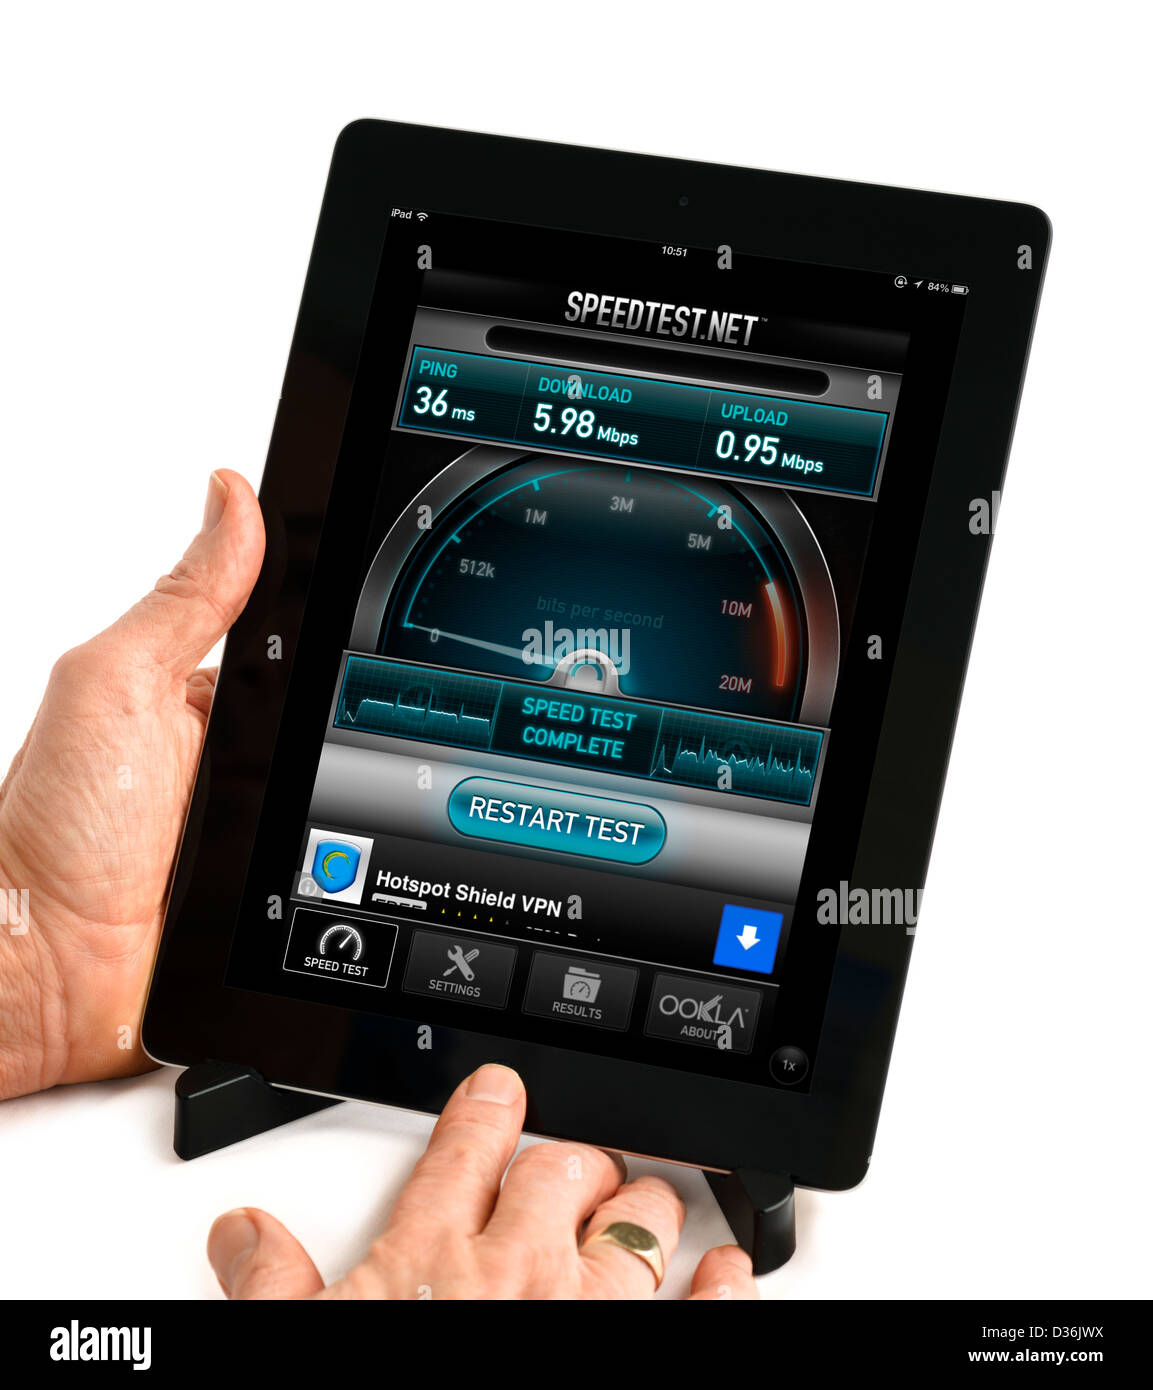 Using the Speedtest.net broadband speed testing app on a 4th generation Apple iPad - Stock Image